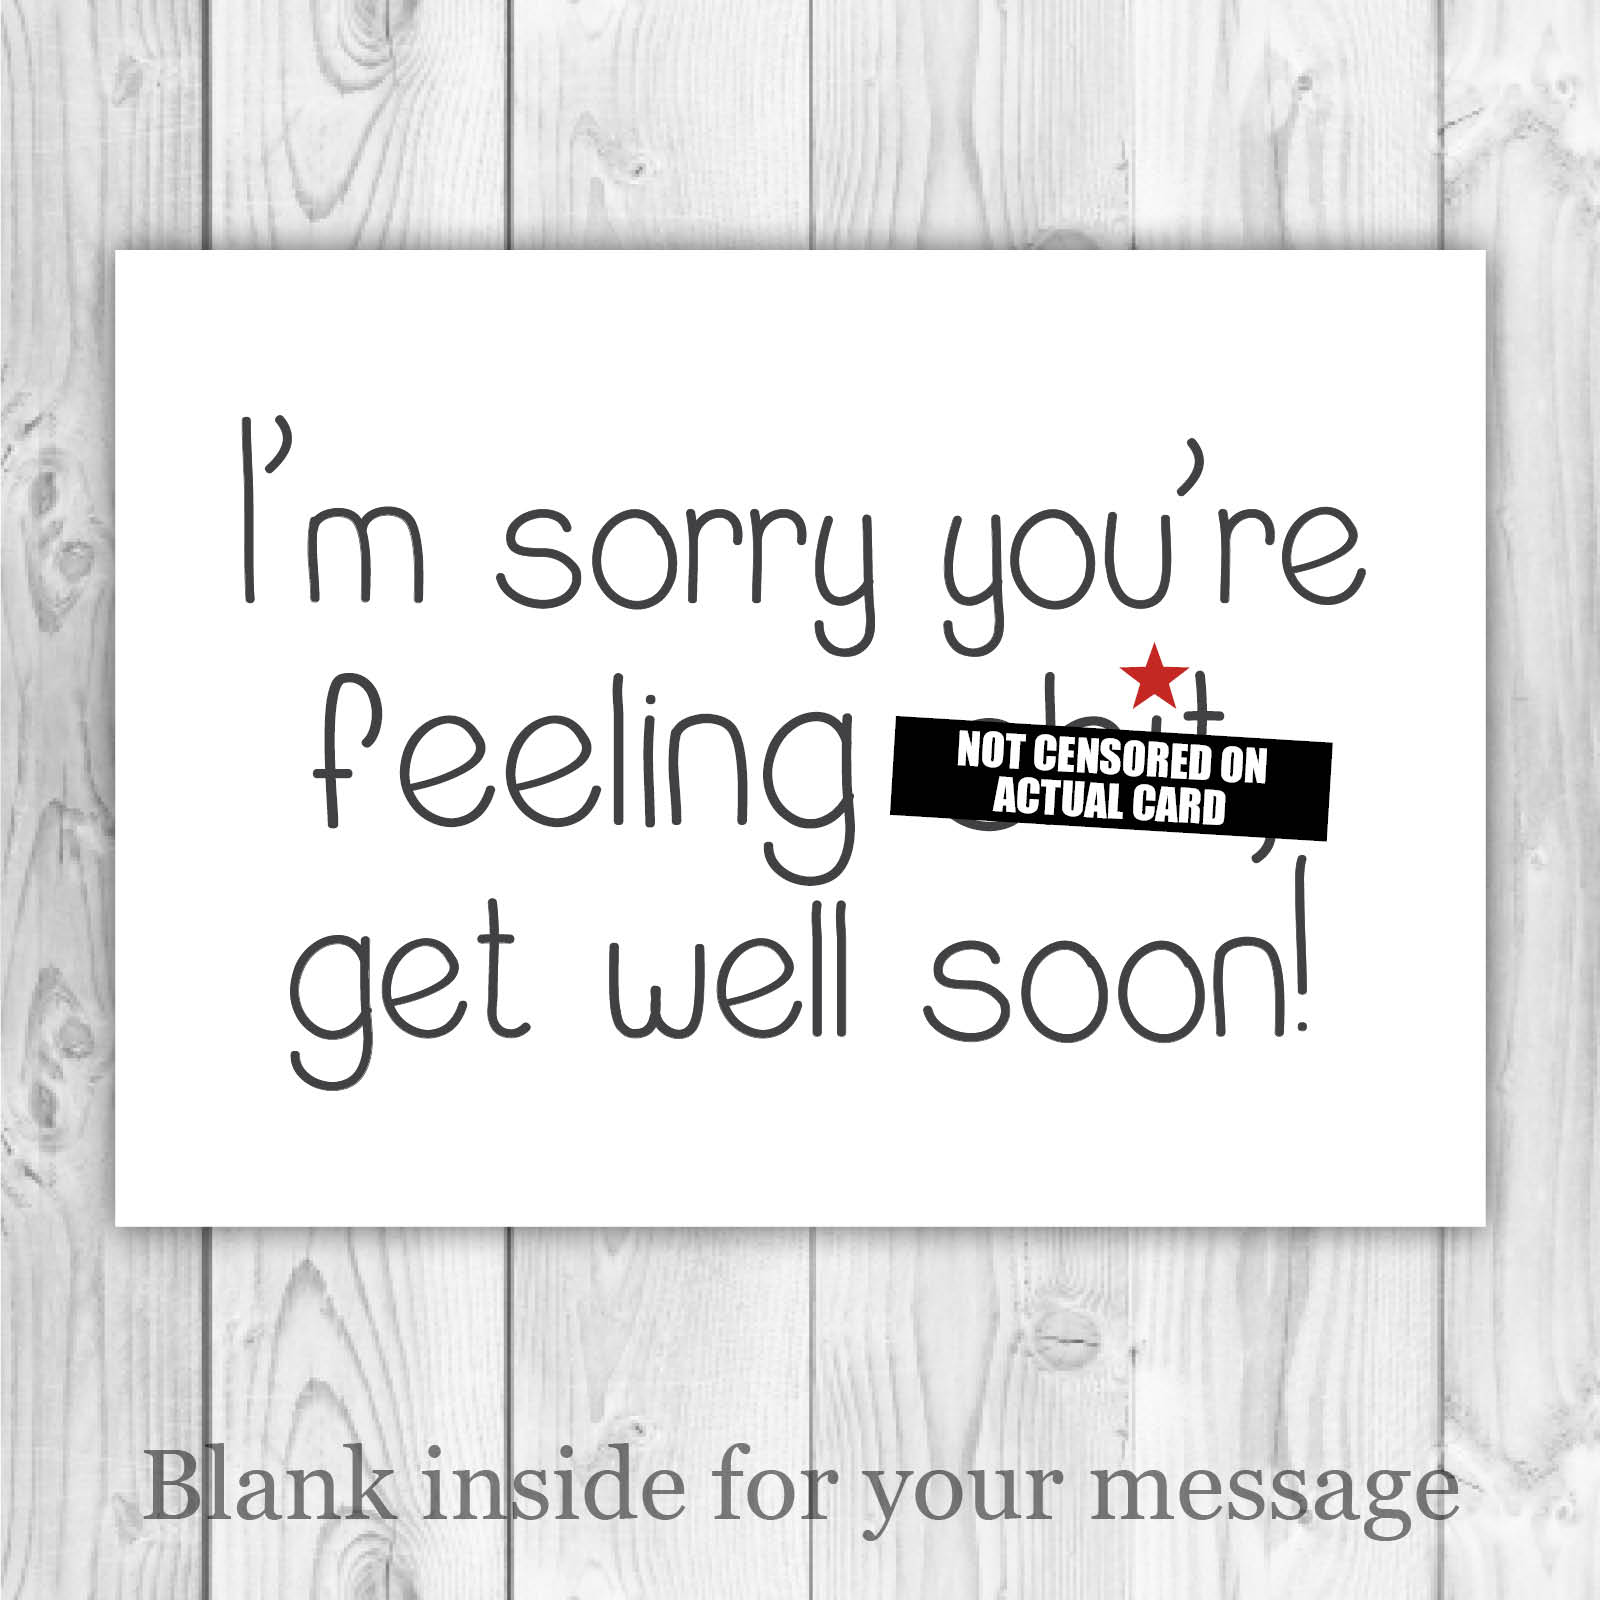 Get Well Soon Card For Friend Wife Husband Girlfriend Boyfriend Rude